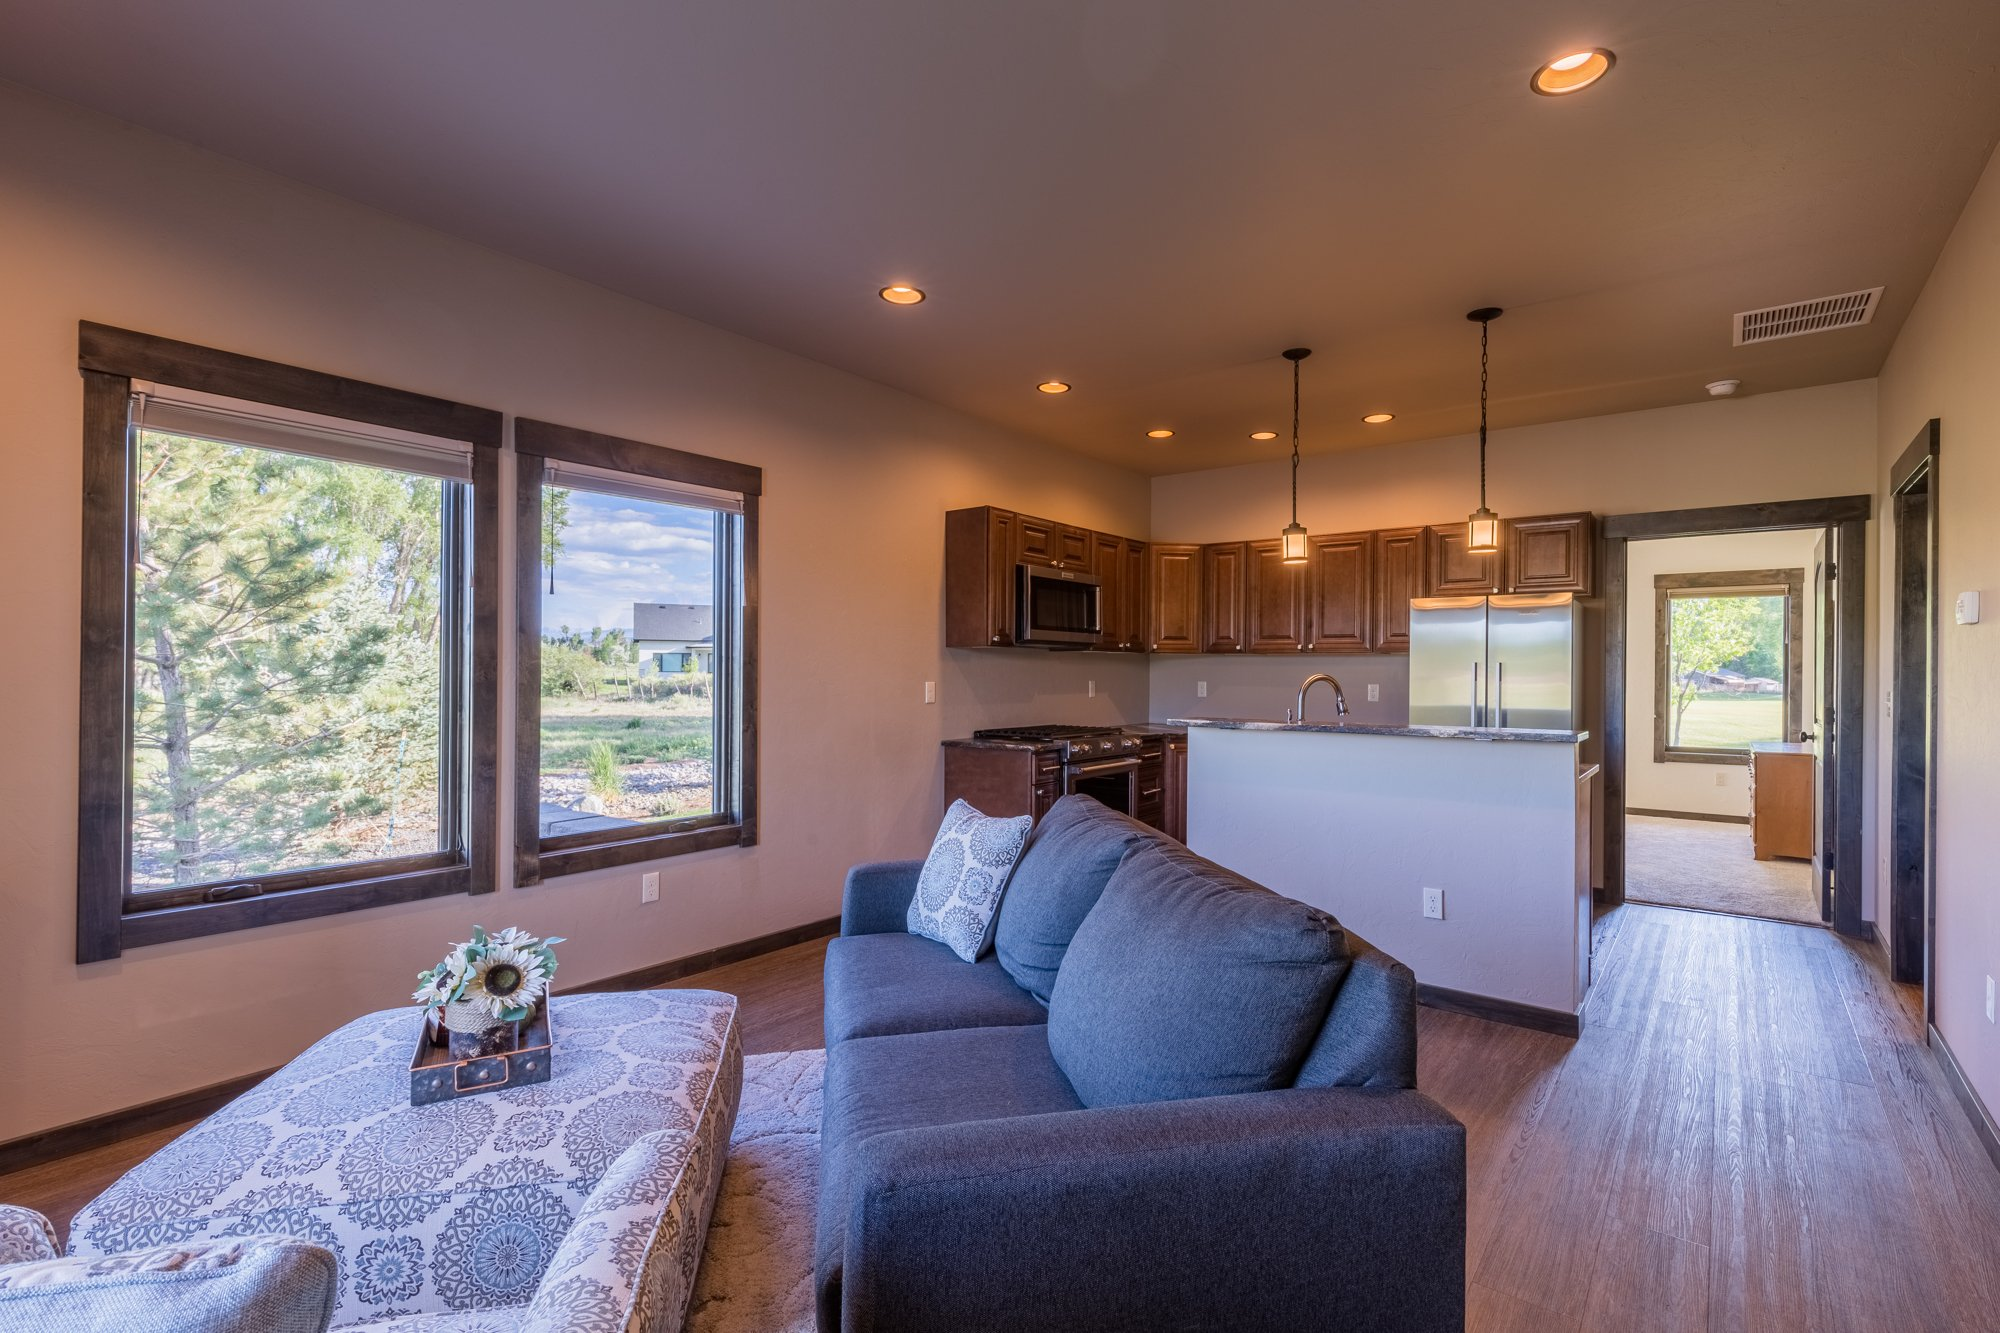 Guest Suite - 15067 6140 Ln Montrose, CO 81403 - Atha Team Luxury Real Estate